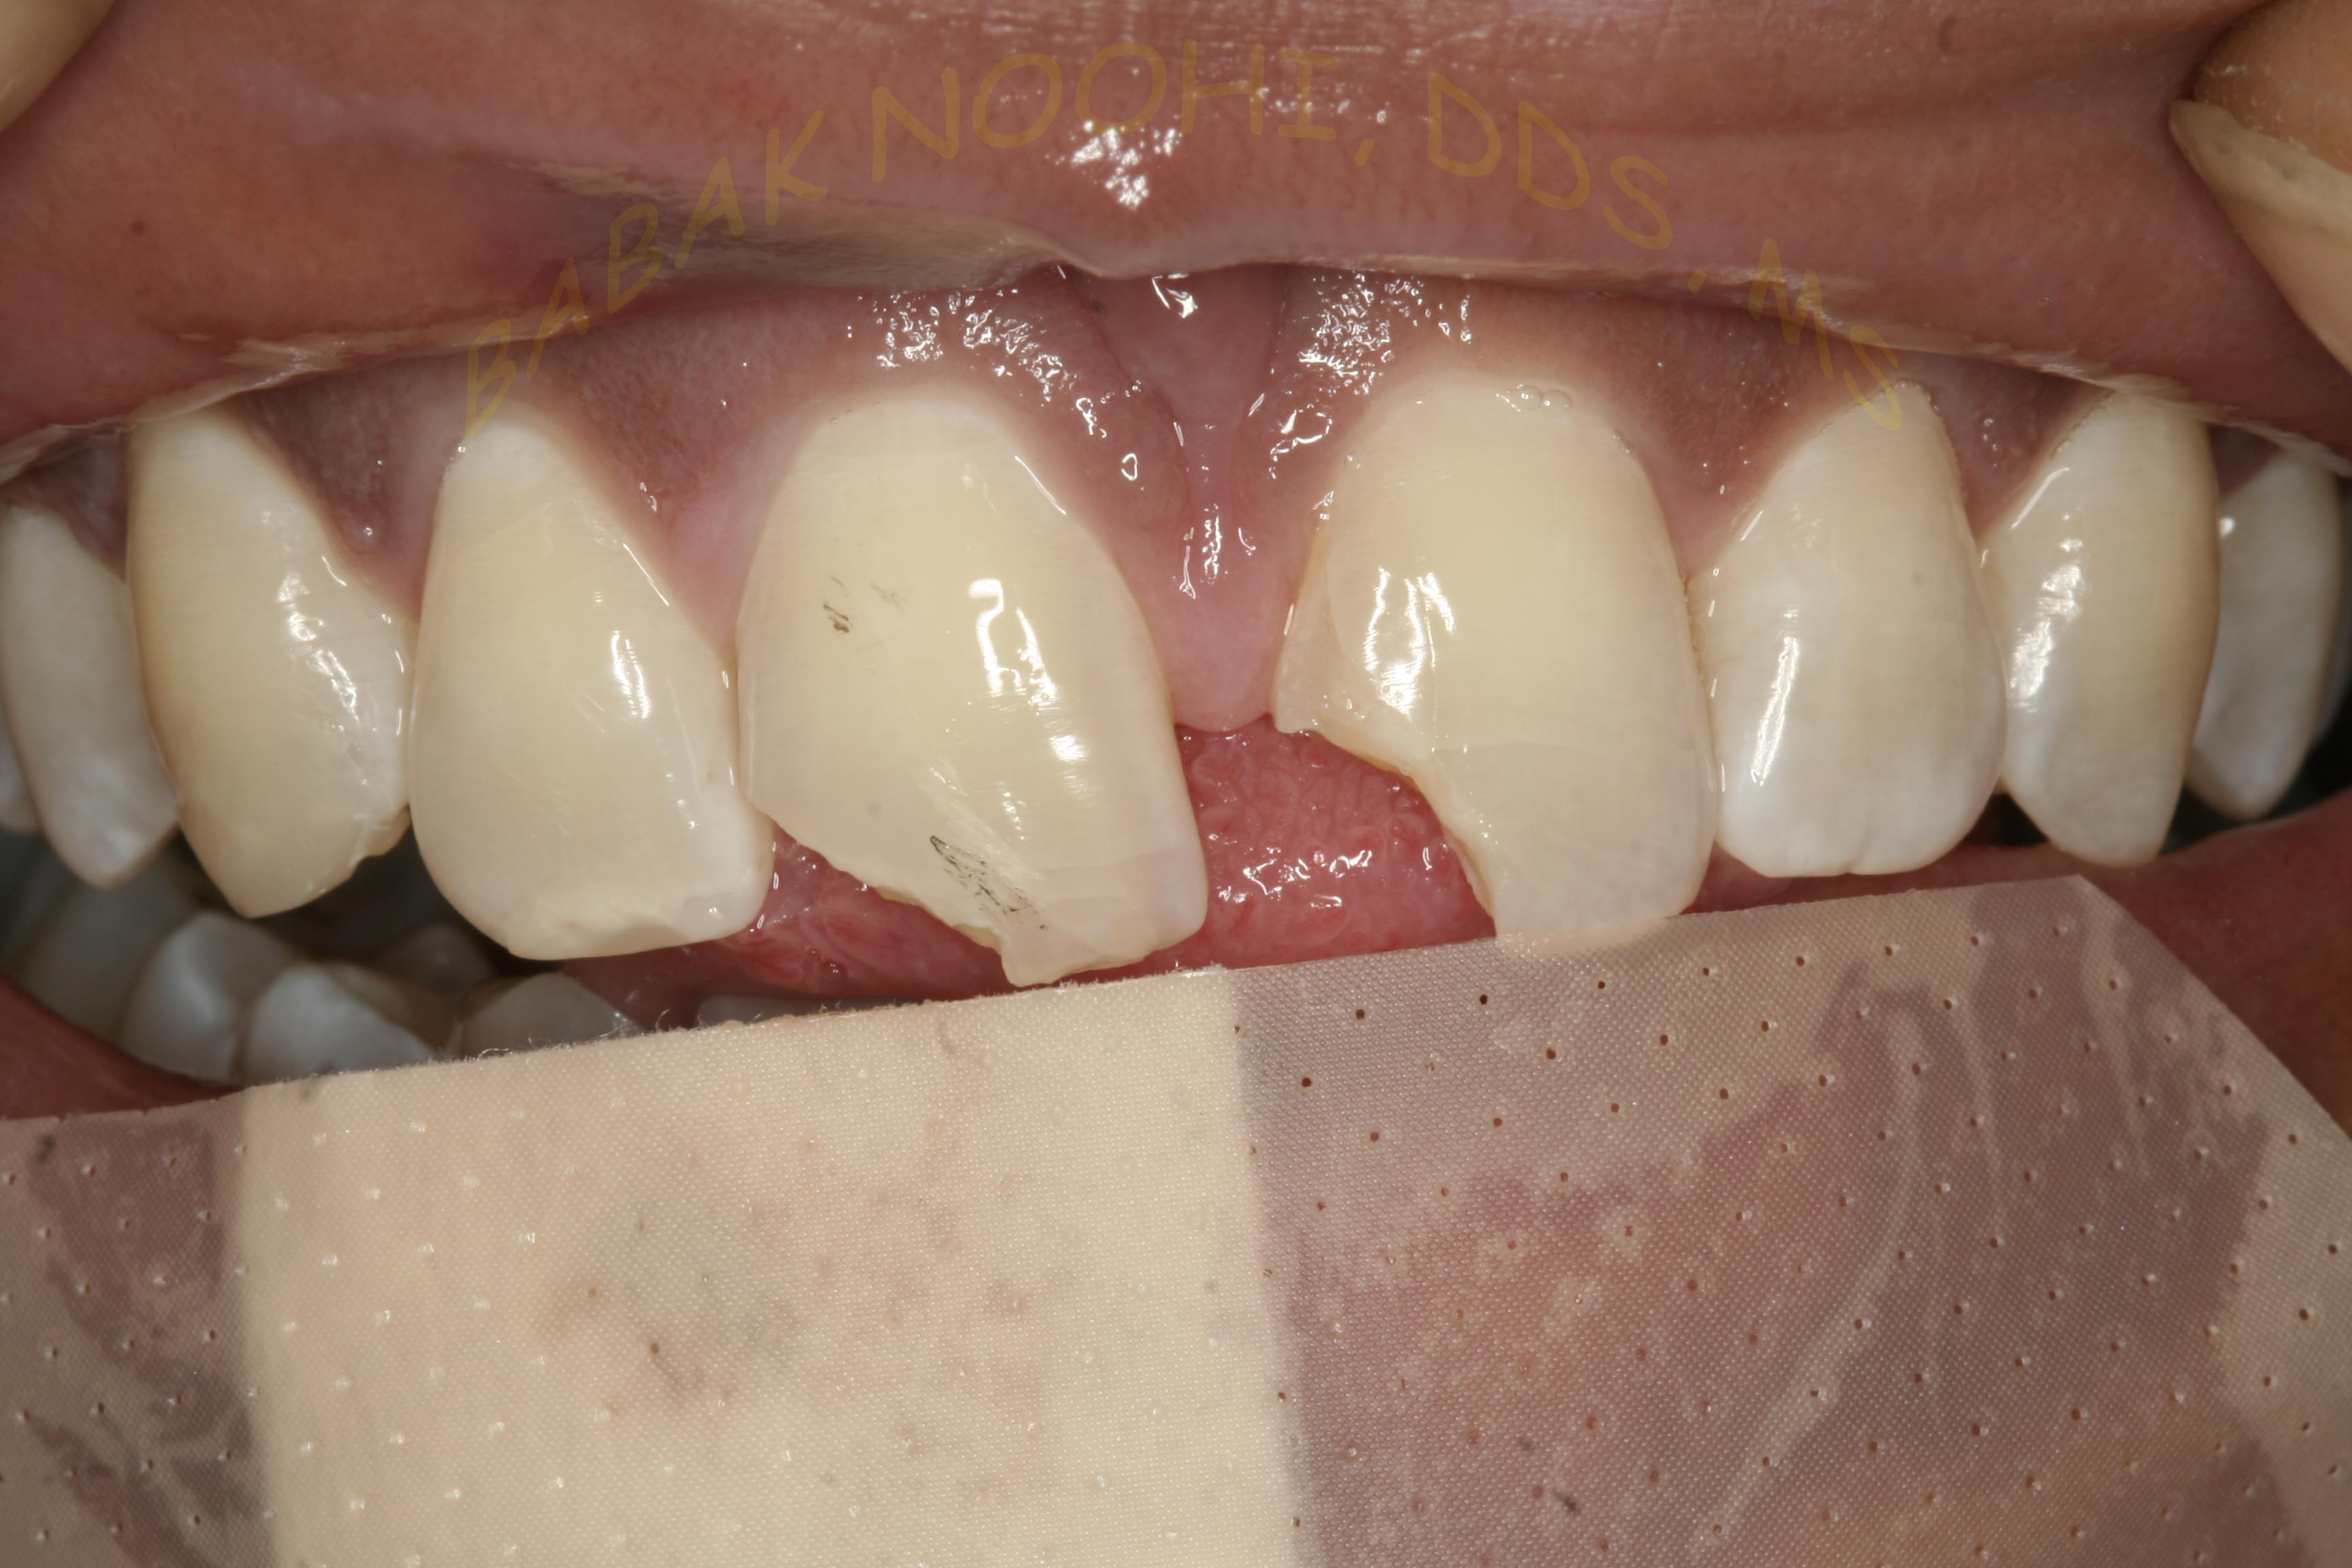 Trauma to Anterior teeth 01